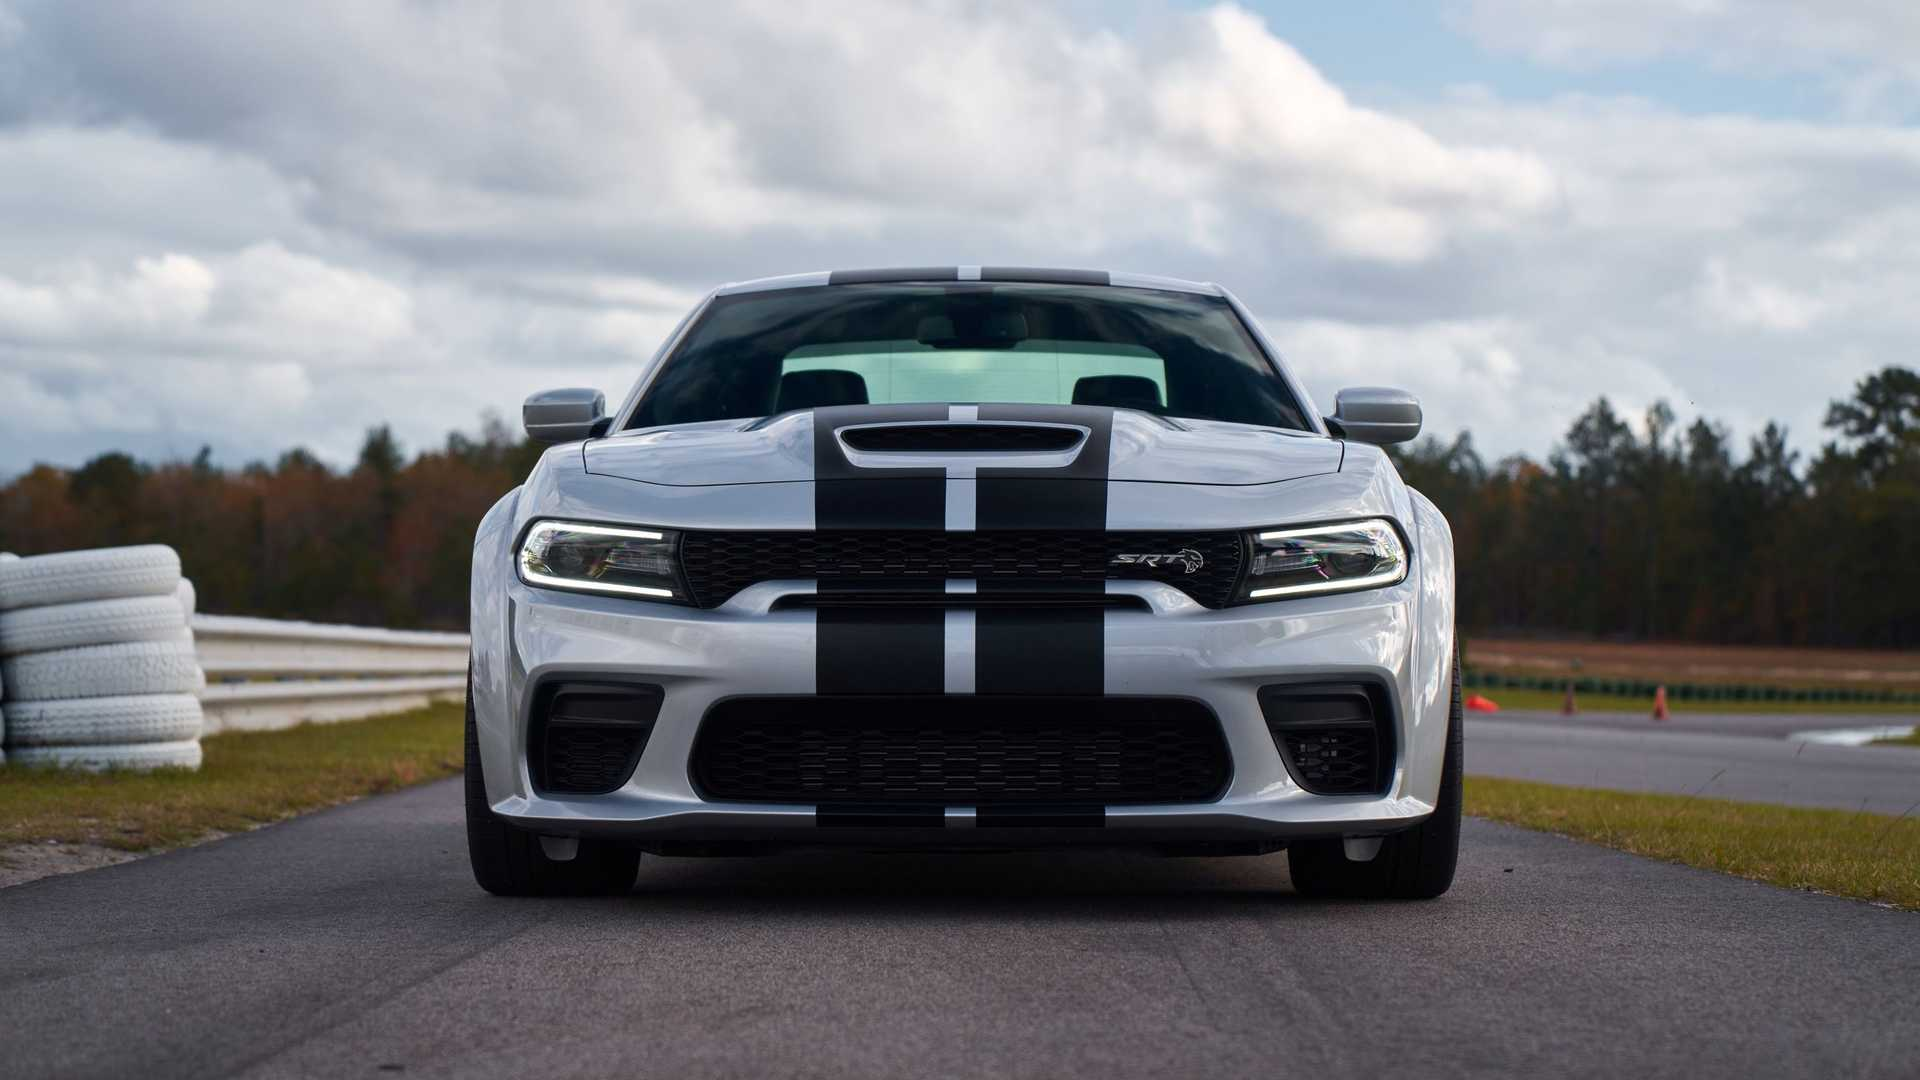 dodge hellcat redeye supercharger 2021 Dodge Charger Hellcat Redeye First Drive Review: Next